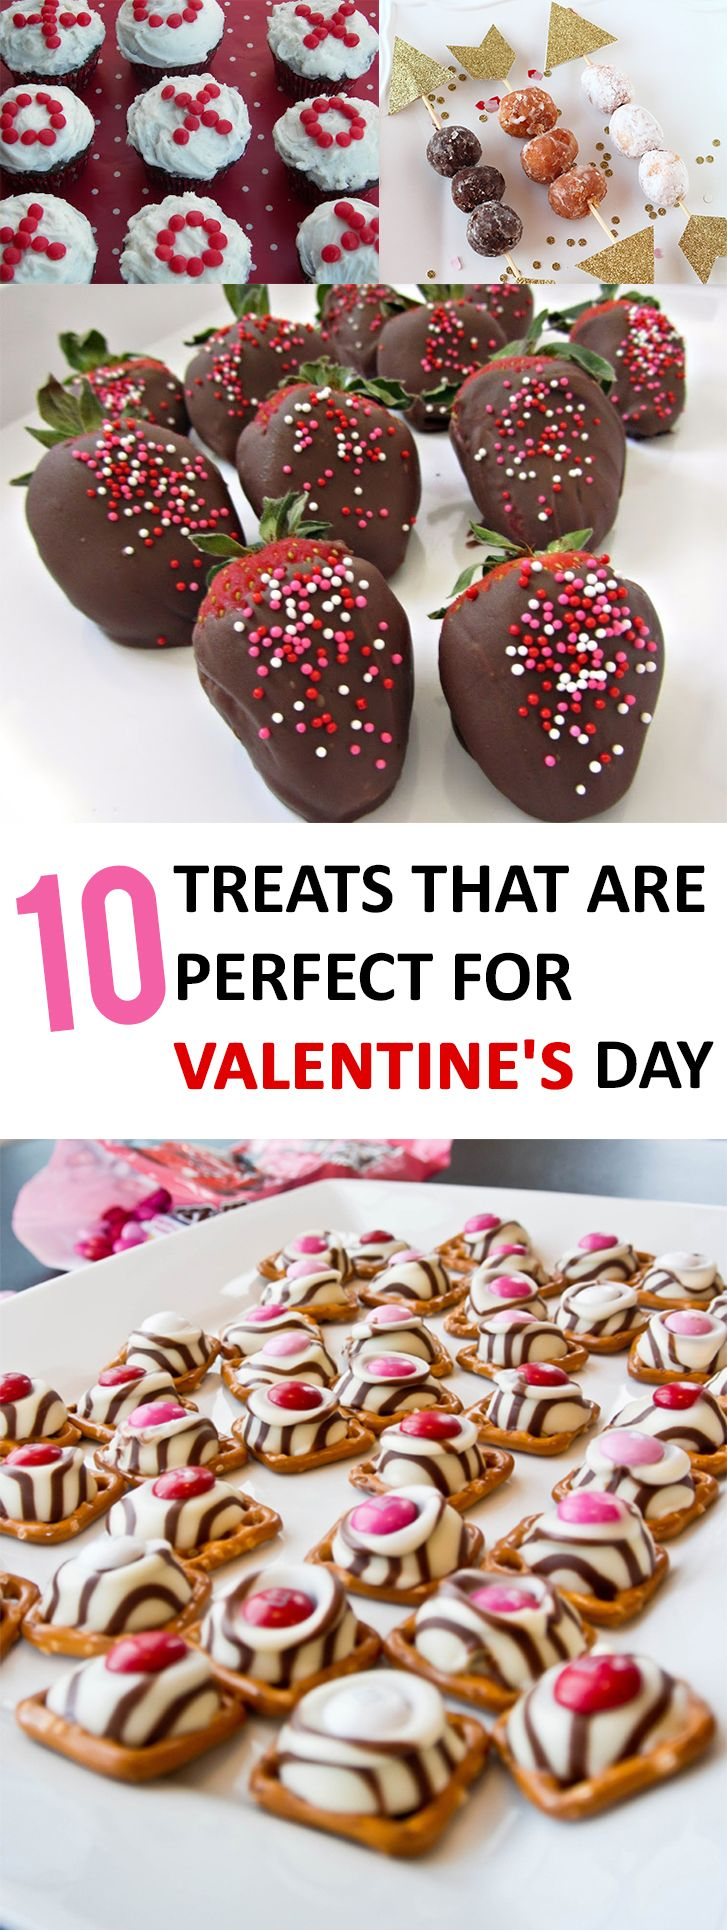 10 Treats That Are Perfect For Valentineu0027s Day